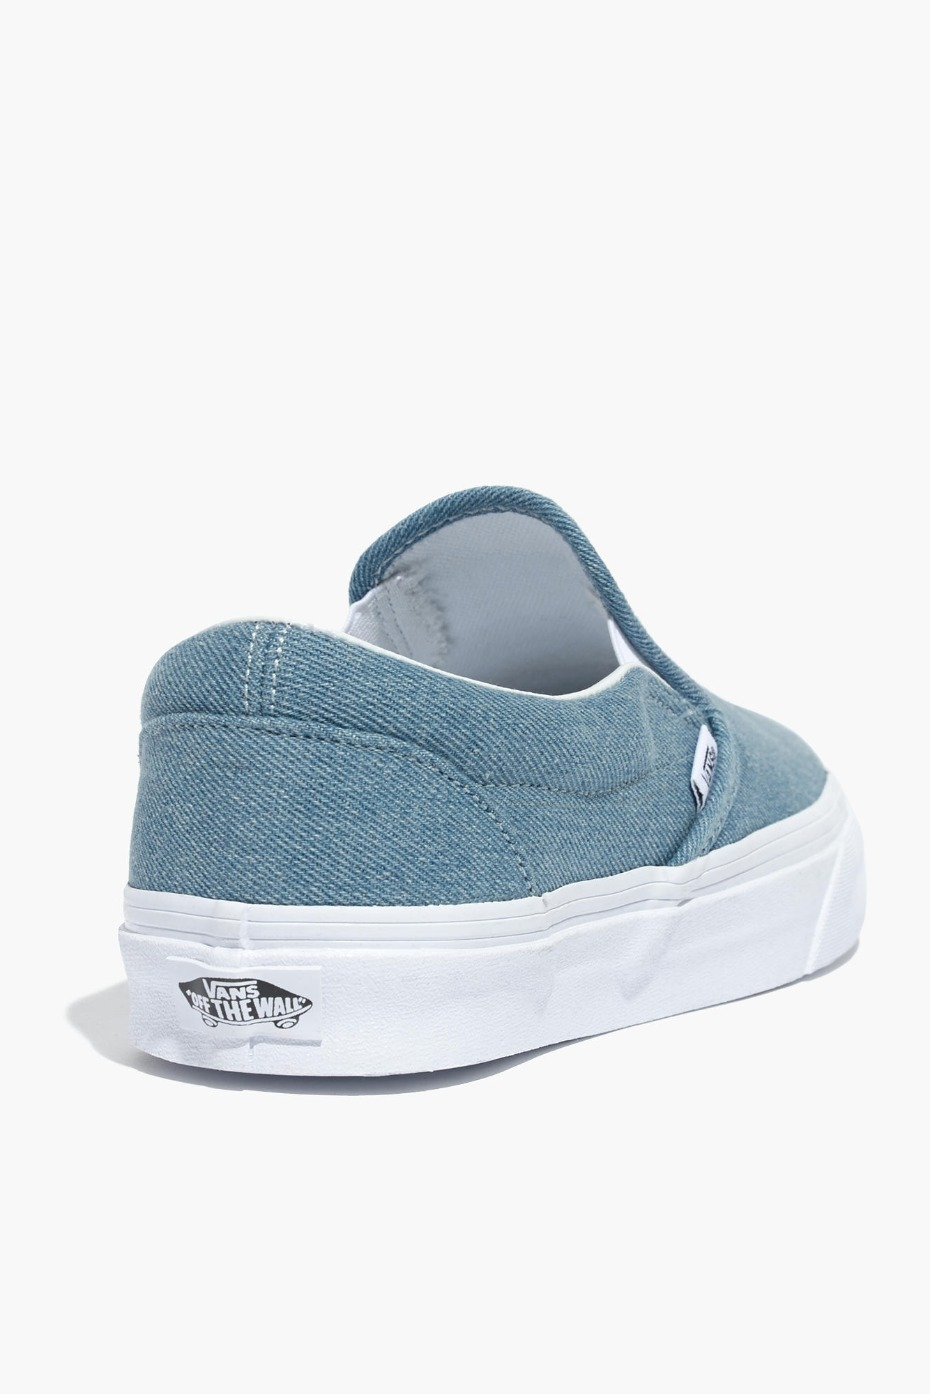 Denim Slip On Vans